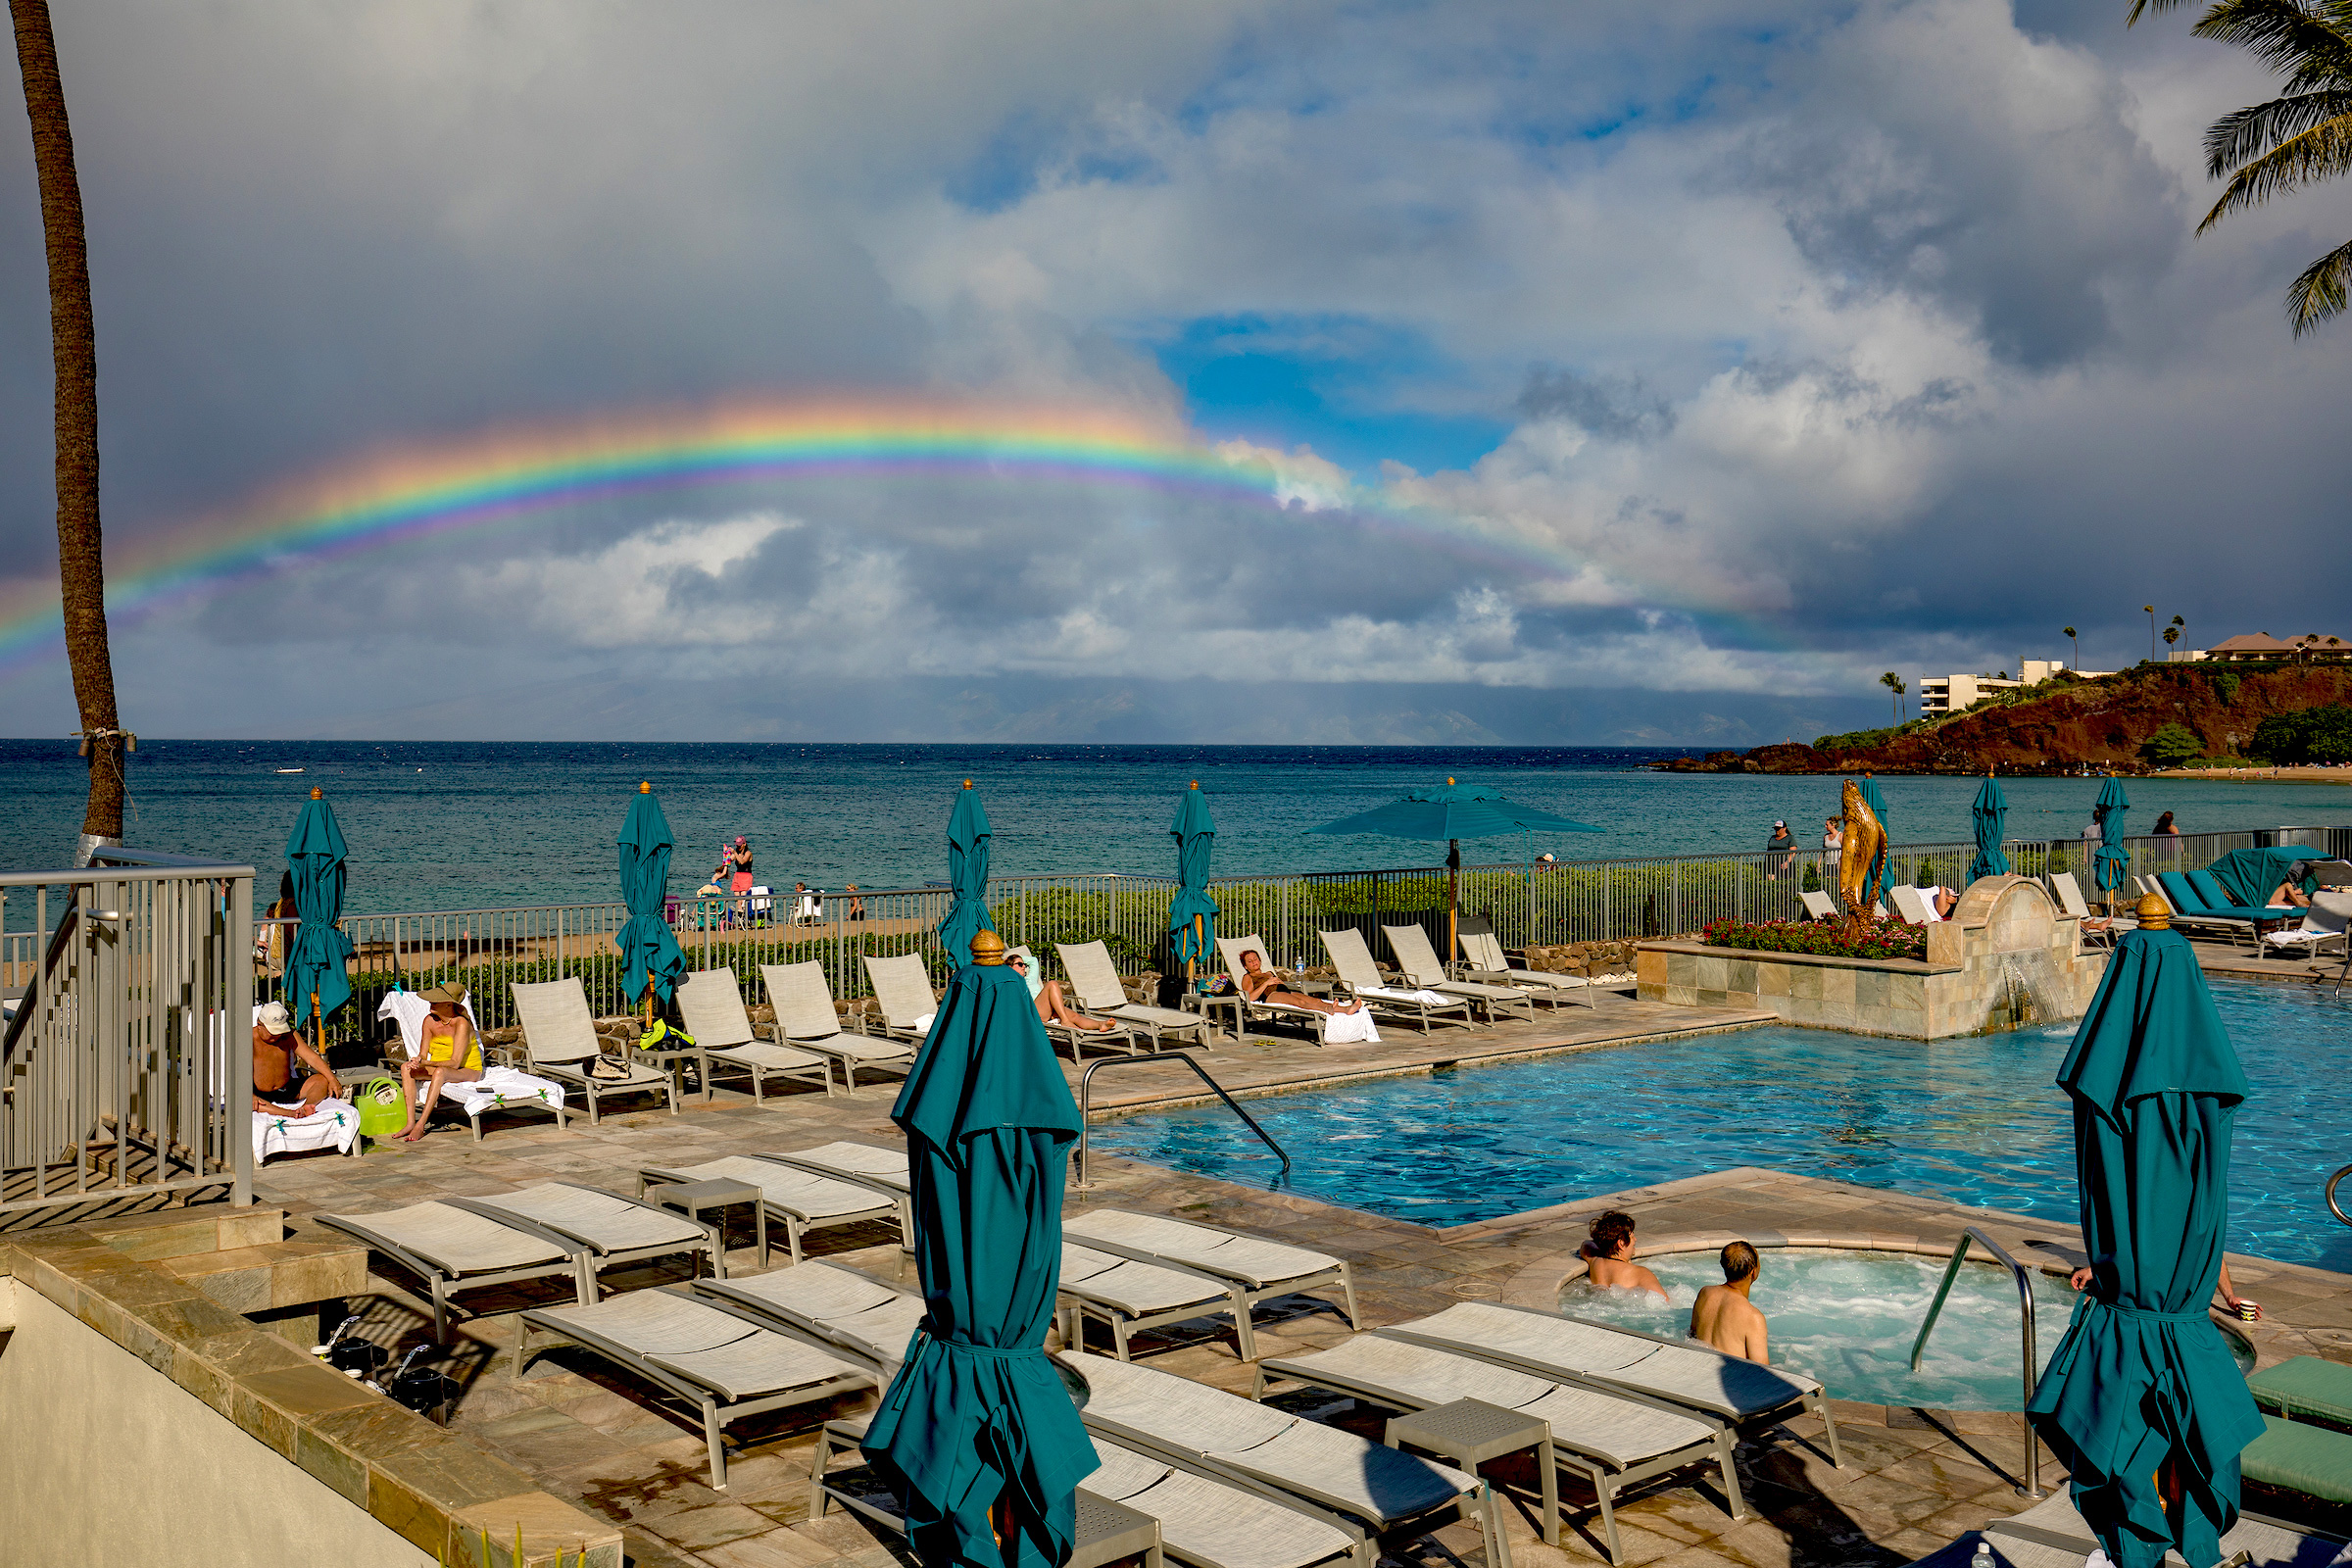 The-Whalers-Kaanapali-Condos-03-Pool-Rainbow.jpg